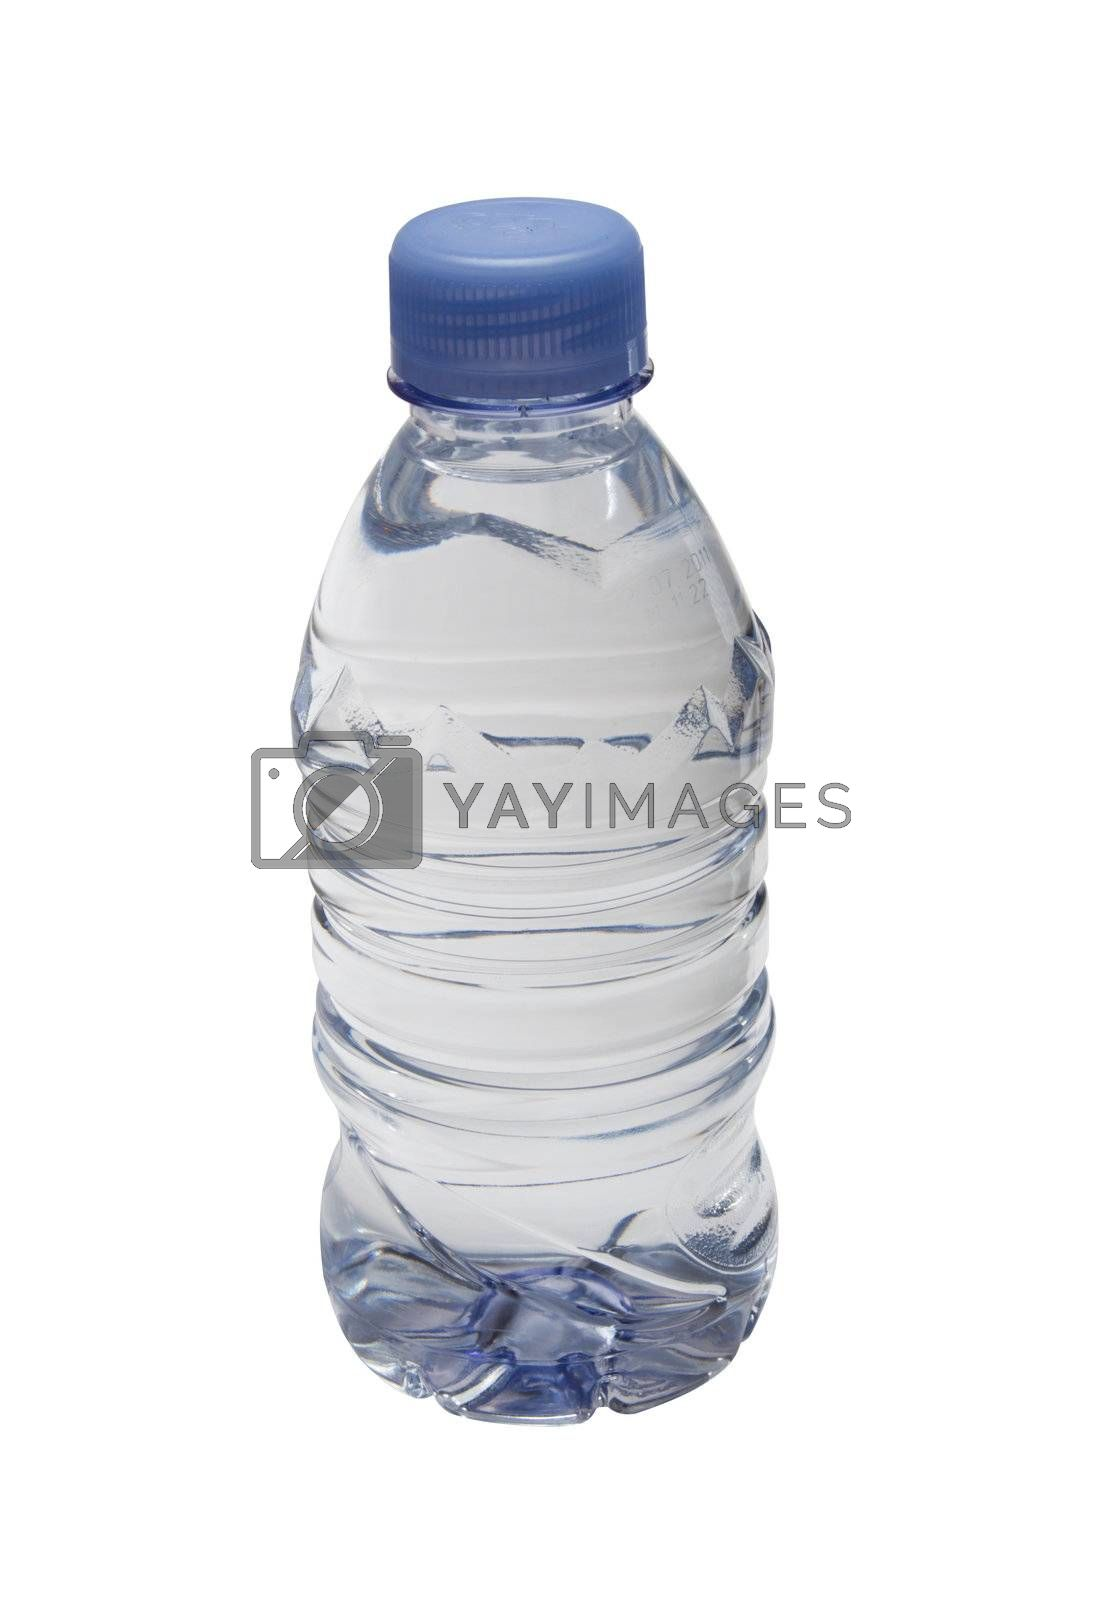 Plastic bottle of clean water. Isolated on white background